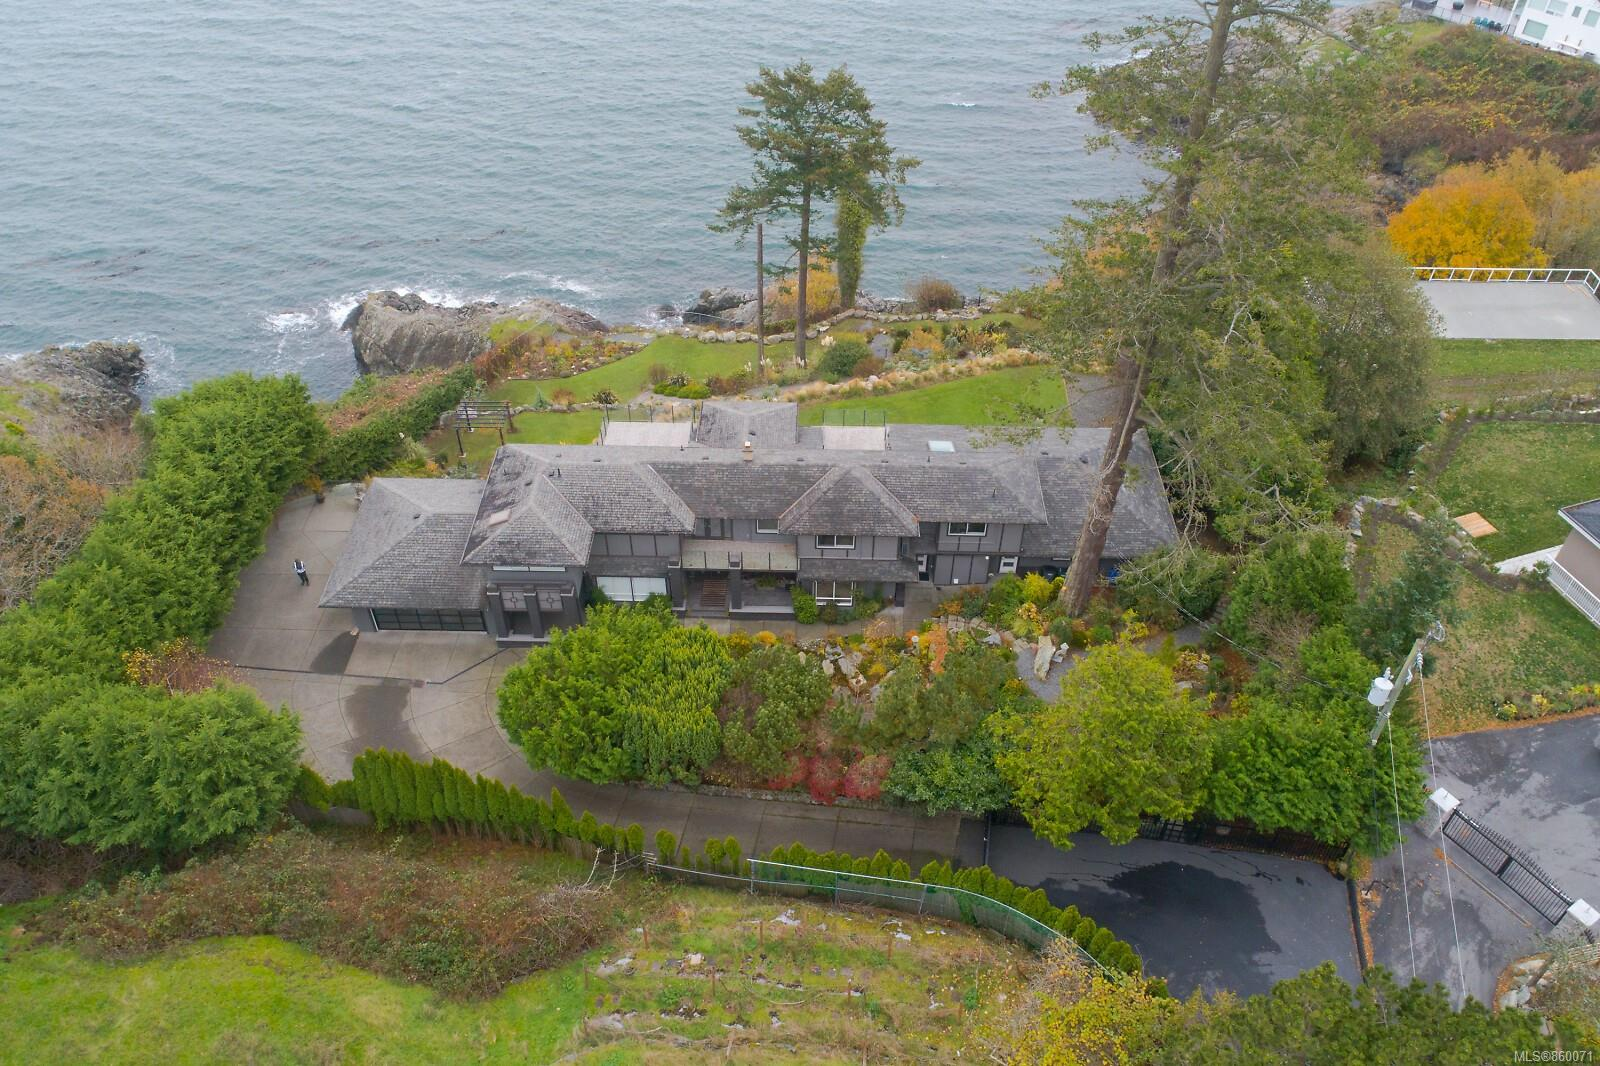 One of the finest oceanfront estates found in Victoria today, on a private 1.16 acre low bank waterfront. This whooping 6400 sq ft custom home is newly renovated and only minutes to UVIC, downtown and all amenities. This property offers 8 BRs, 7 baths, and 3 kitchens, ideal for guest quarters or extended family. The main floor includes spacious LR with floor to ceiling windows, modern fireplaces, formal dining room and 5 sundrenched decks all overlooking the ocean view. The gourmet kitchen with white quartz countertops, dual breakfast bars and top end appliances are sure to please. Upstairs you will love the spacious master suite with his & her walk in closets, jacuzzi ensuite, large bay windows & deck to showcase the views. The lowest floor includes 3 BRs, spacious living area, large indoor hot tub and separate sauna with a 3 car garage. You will enjoy the meticulous landscaping with a waterfall, lighting and irrigation system throughout the gardens, and paths to the ocean. Call Now!